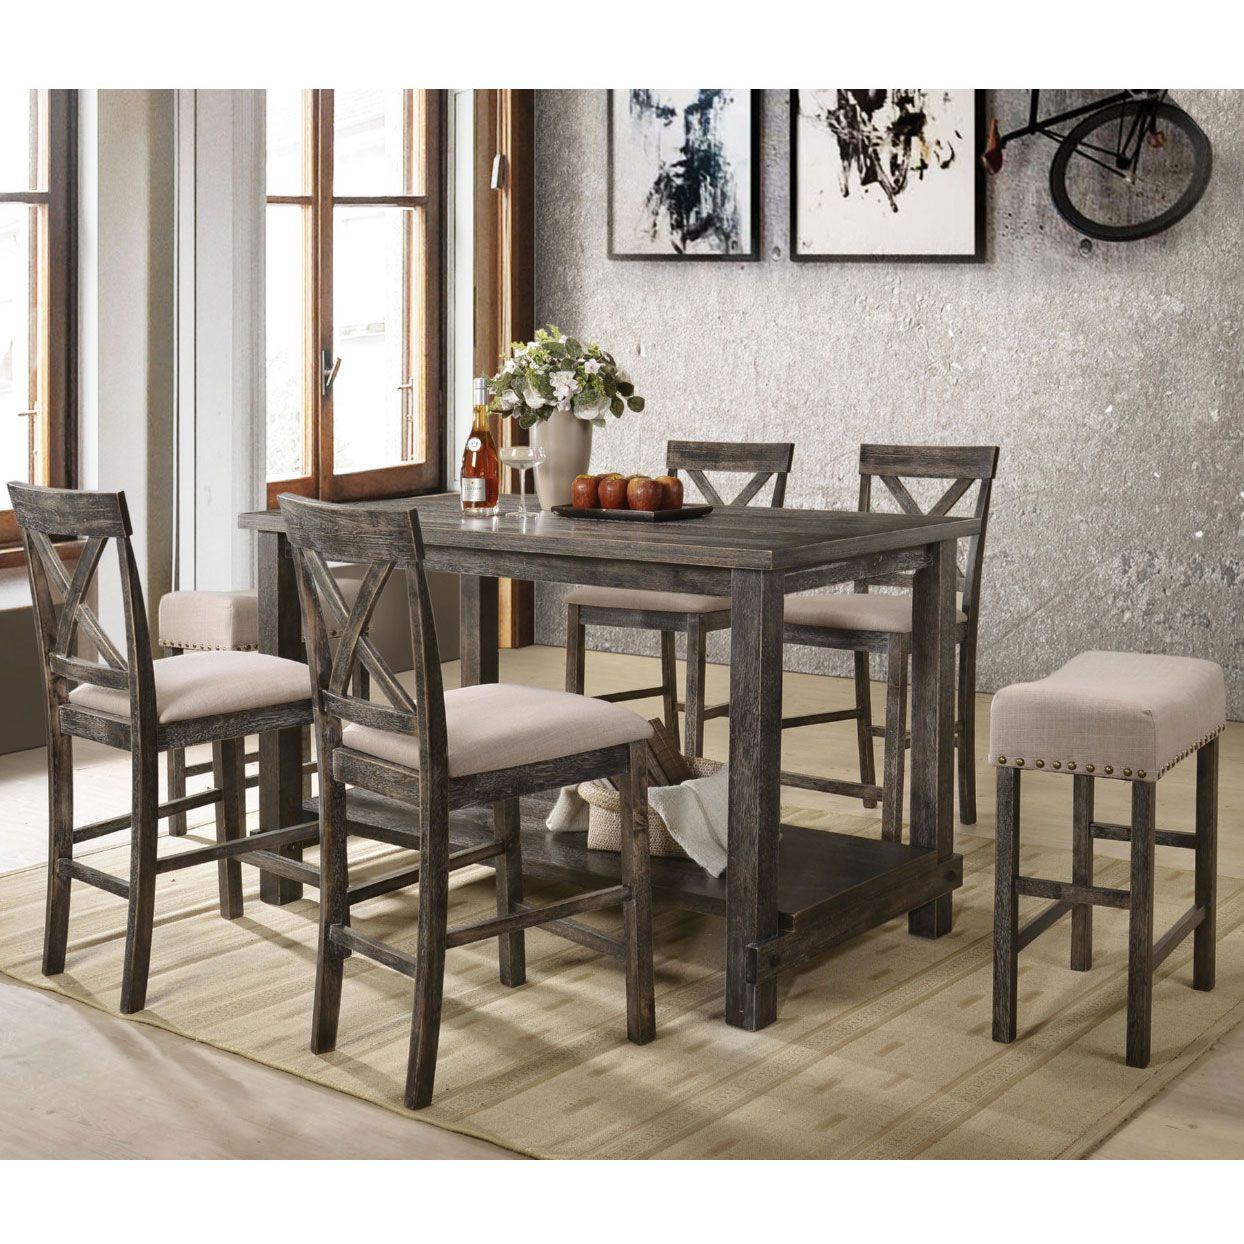 27++ 60 counter height dining table Best Seller